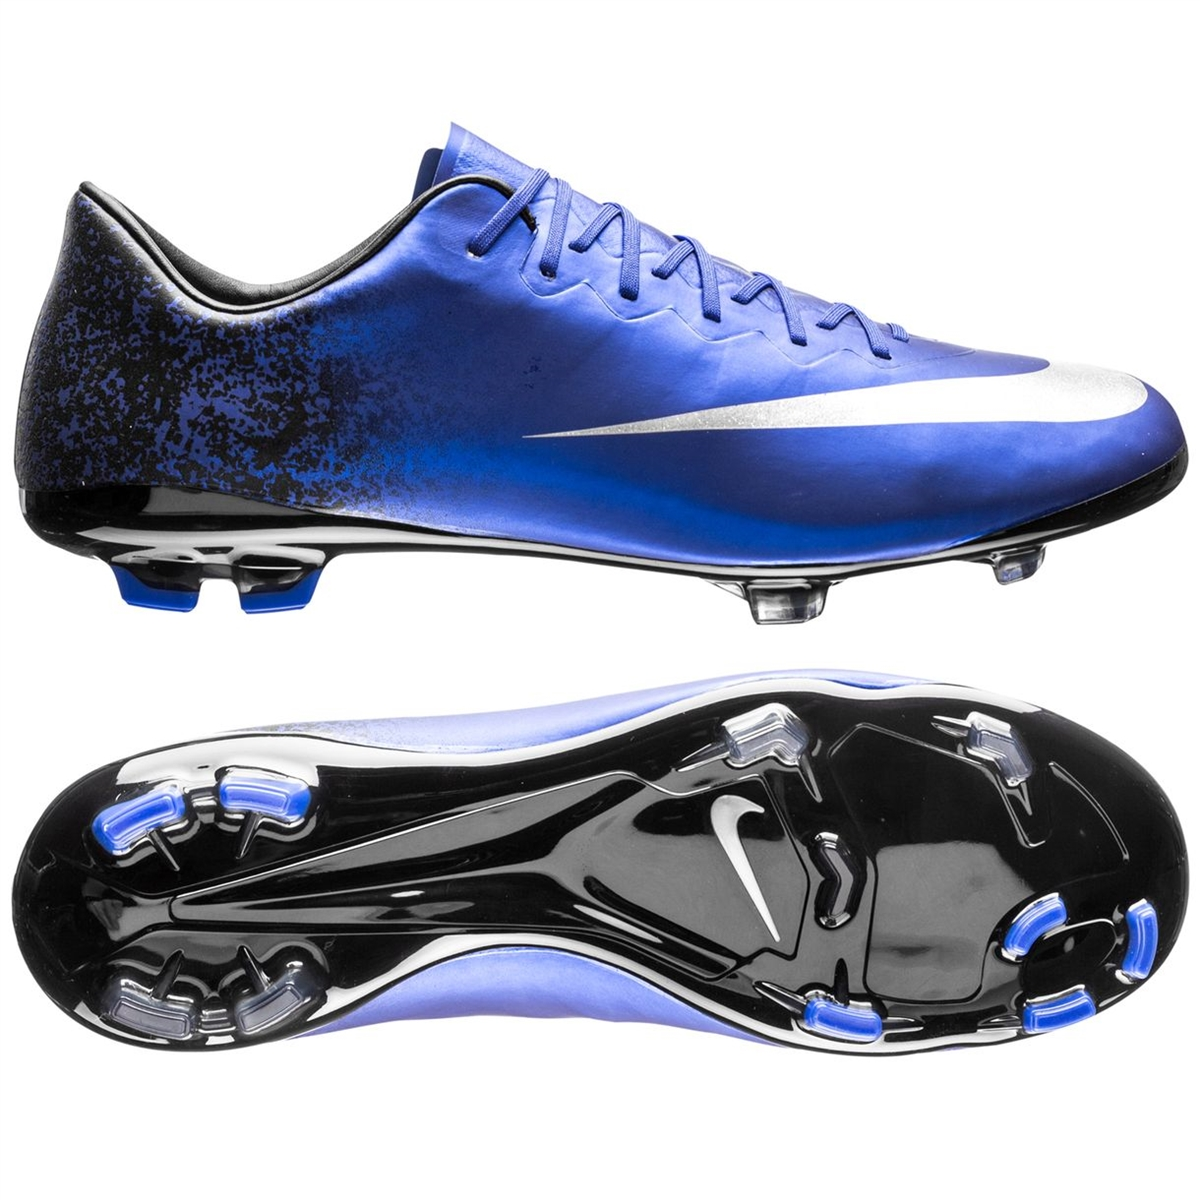 Customized Soccer Shoes Nike